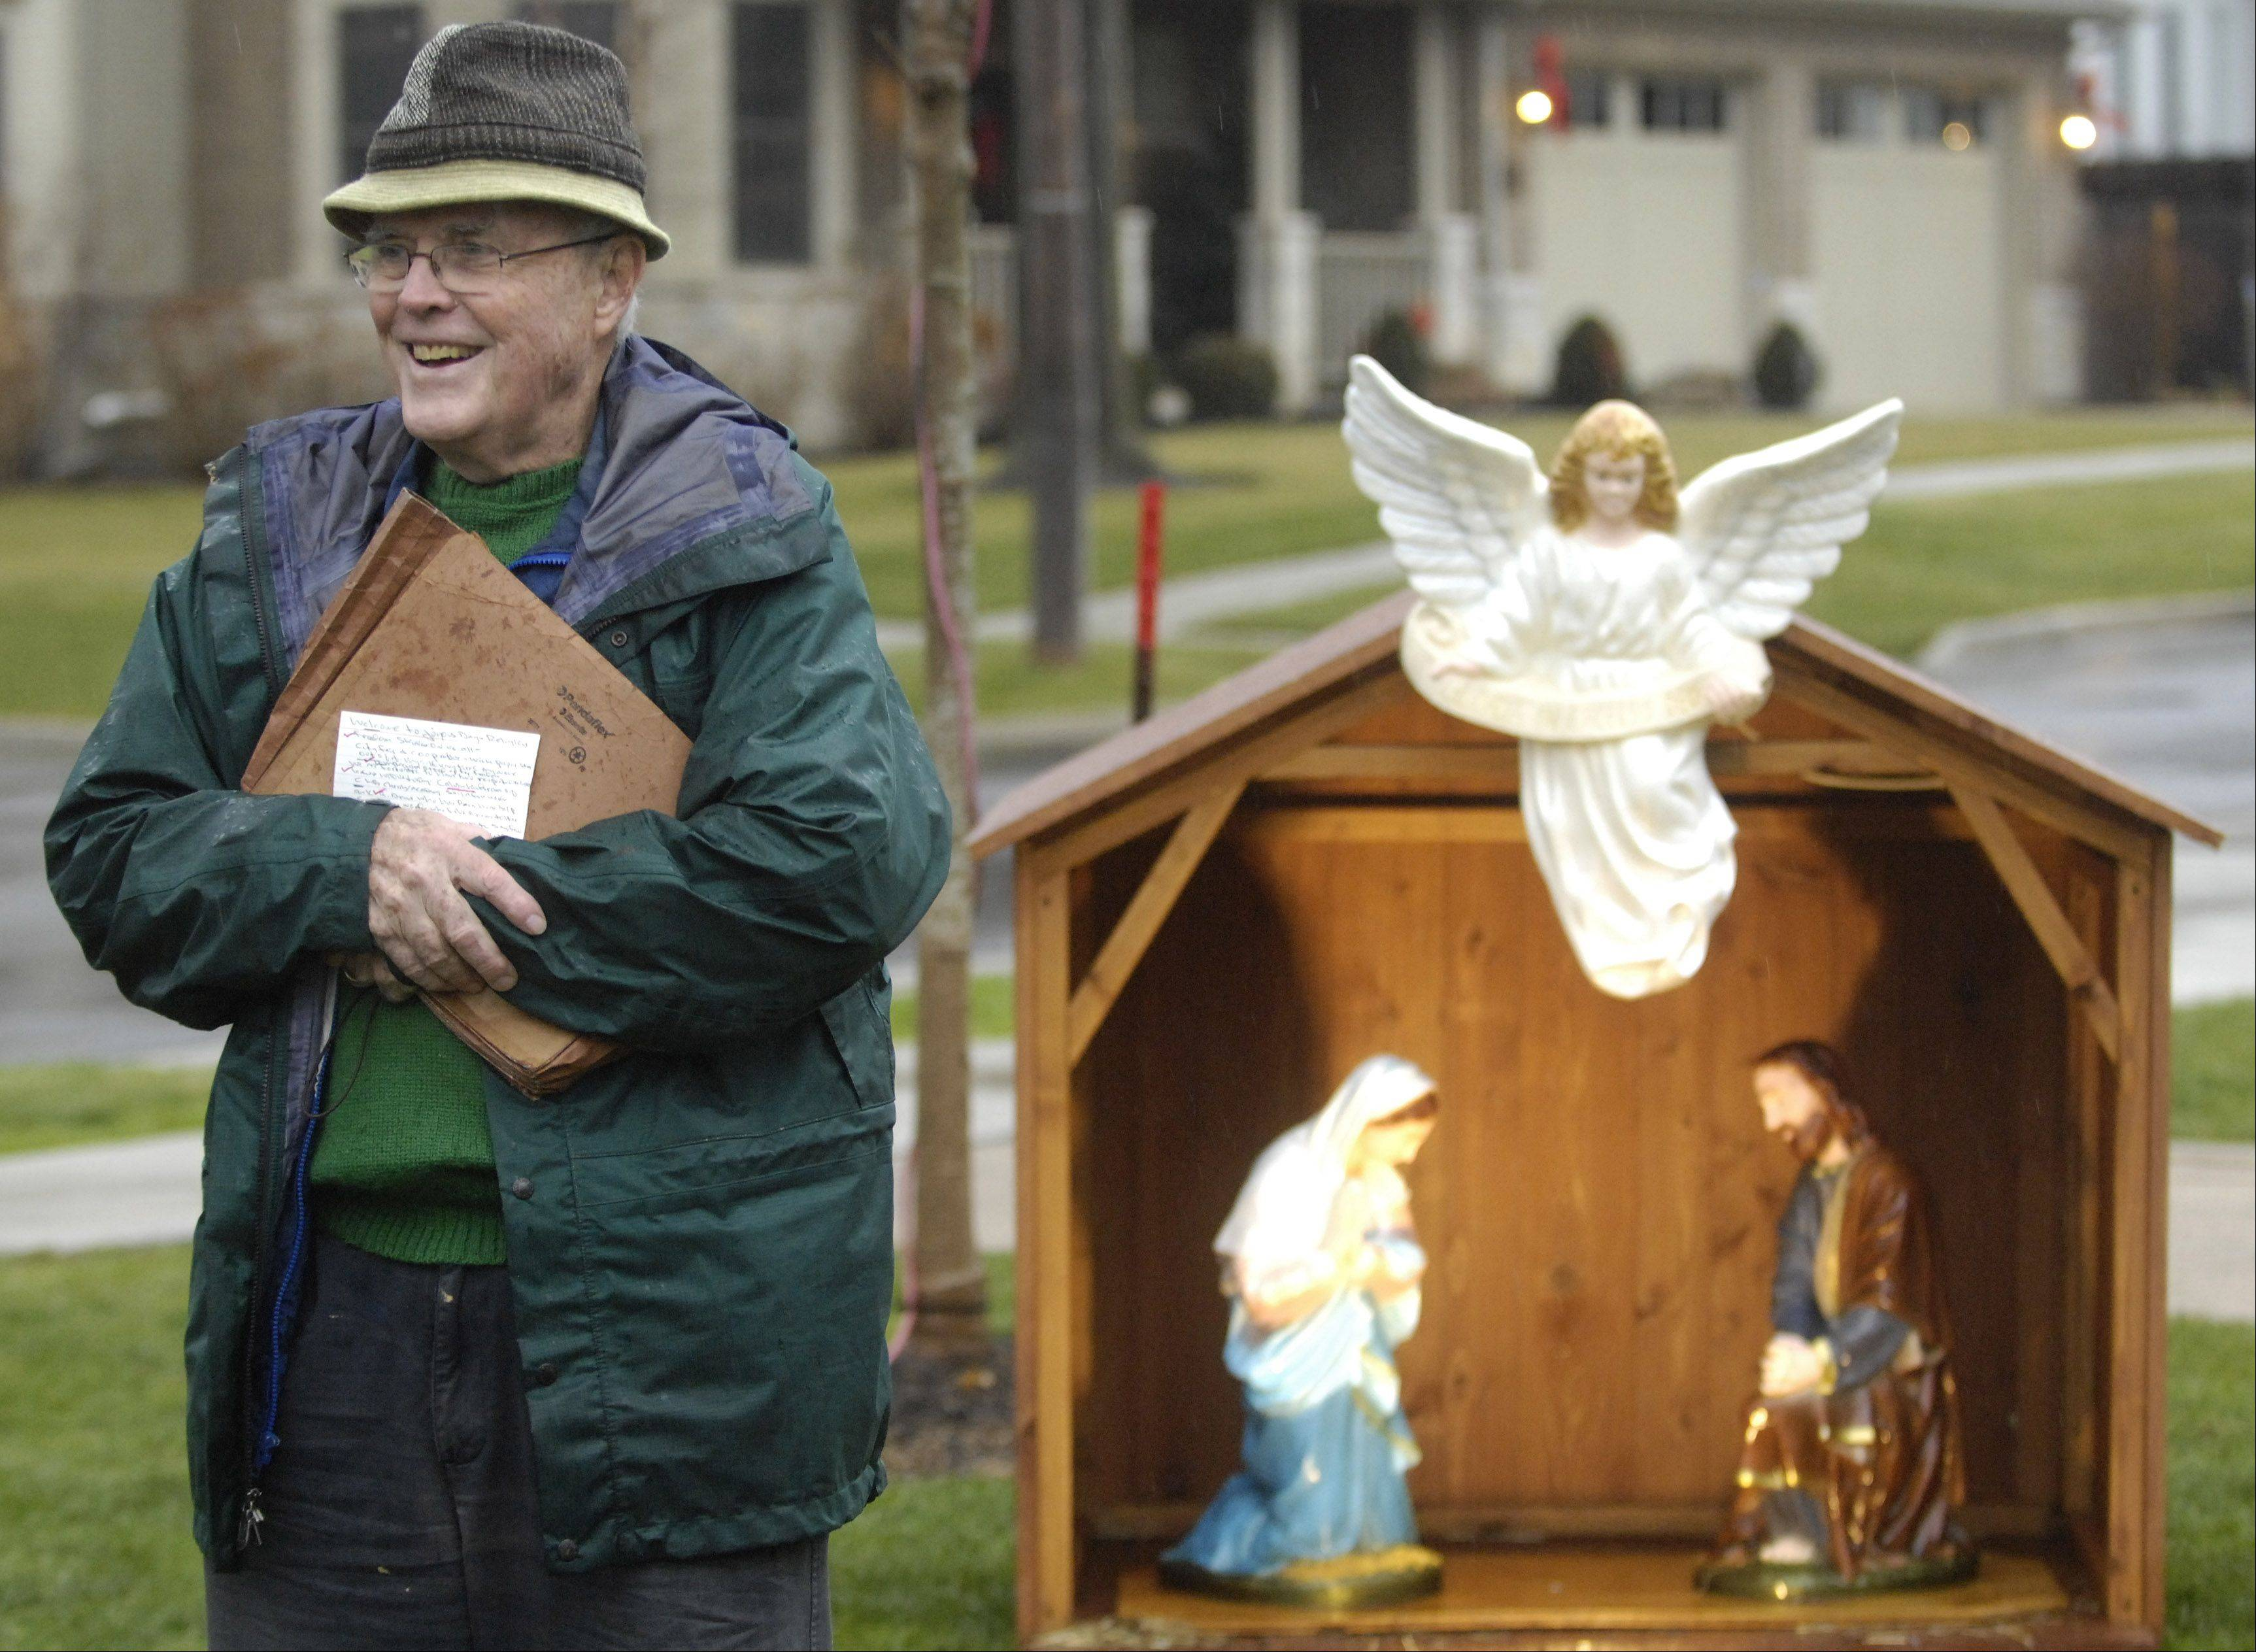 Supporters celebrate Nativity at Arlington Heights park